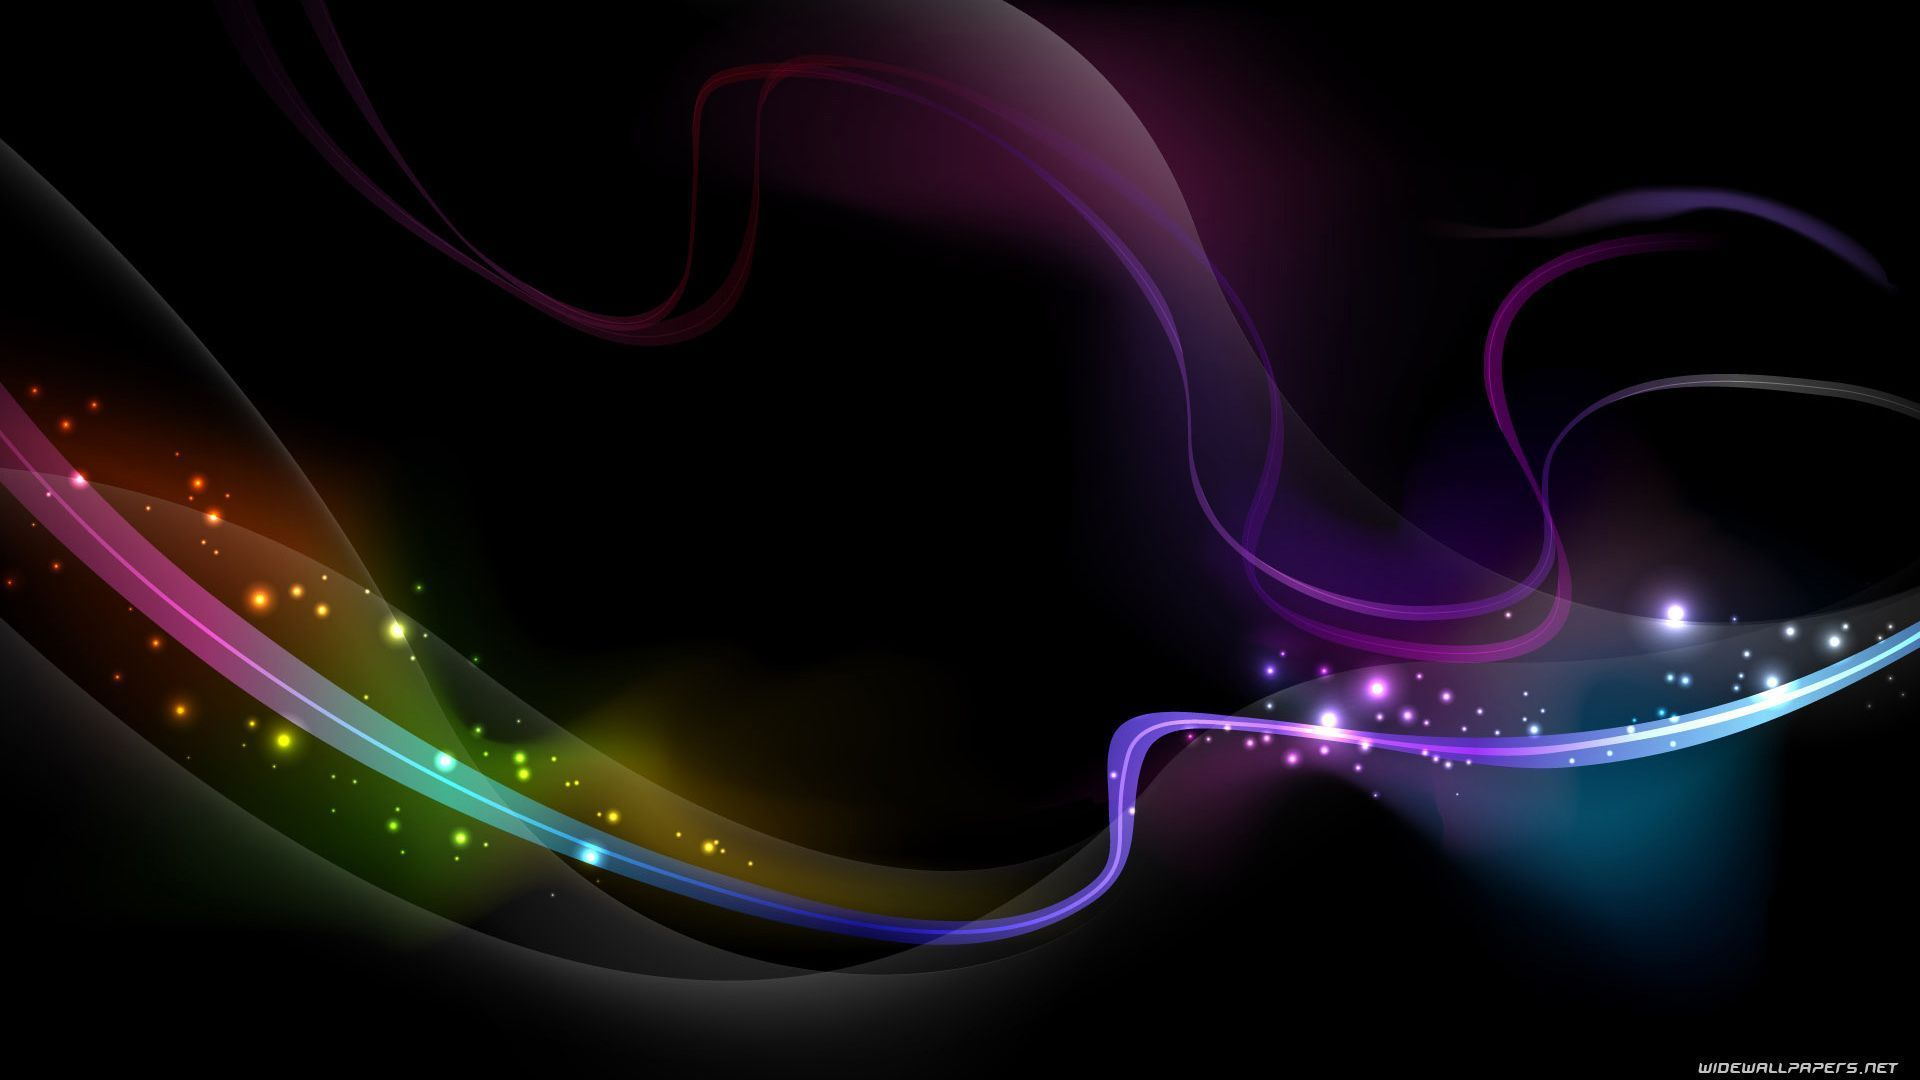 Hd wallpaper girly - Abstract Wallpaper Girly Purple Wallpapers High Definition For Hd 1600 1200 Girly Abstract Backgrounds